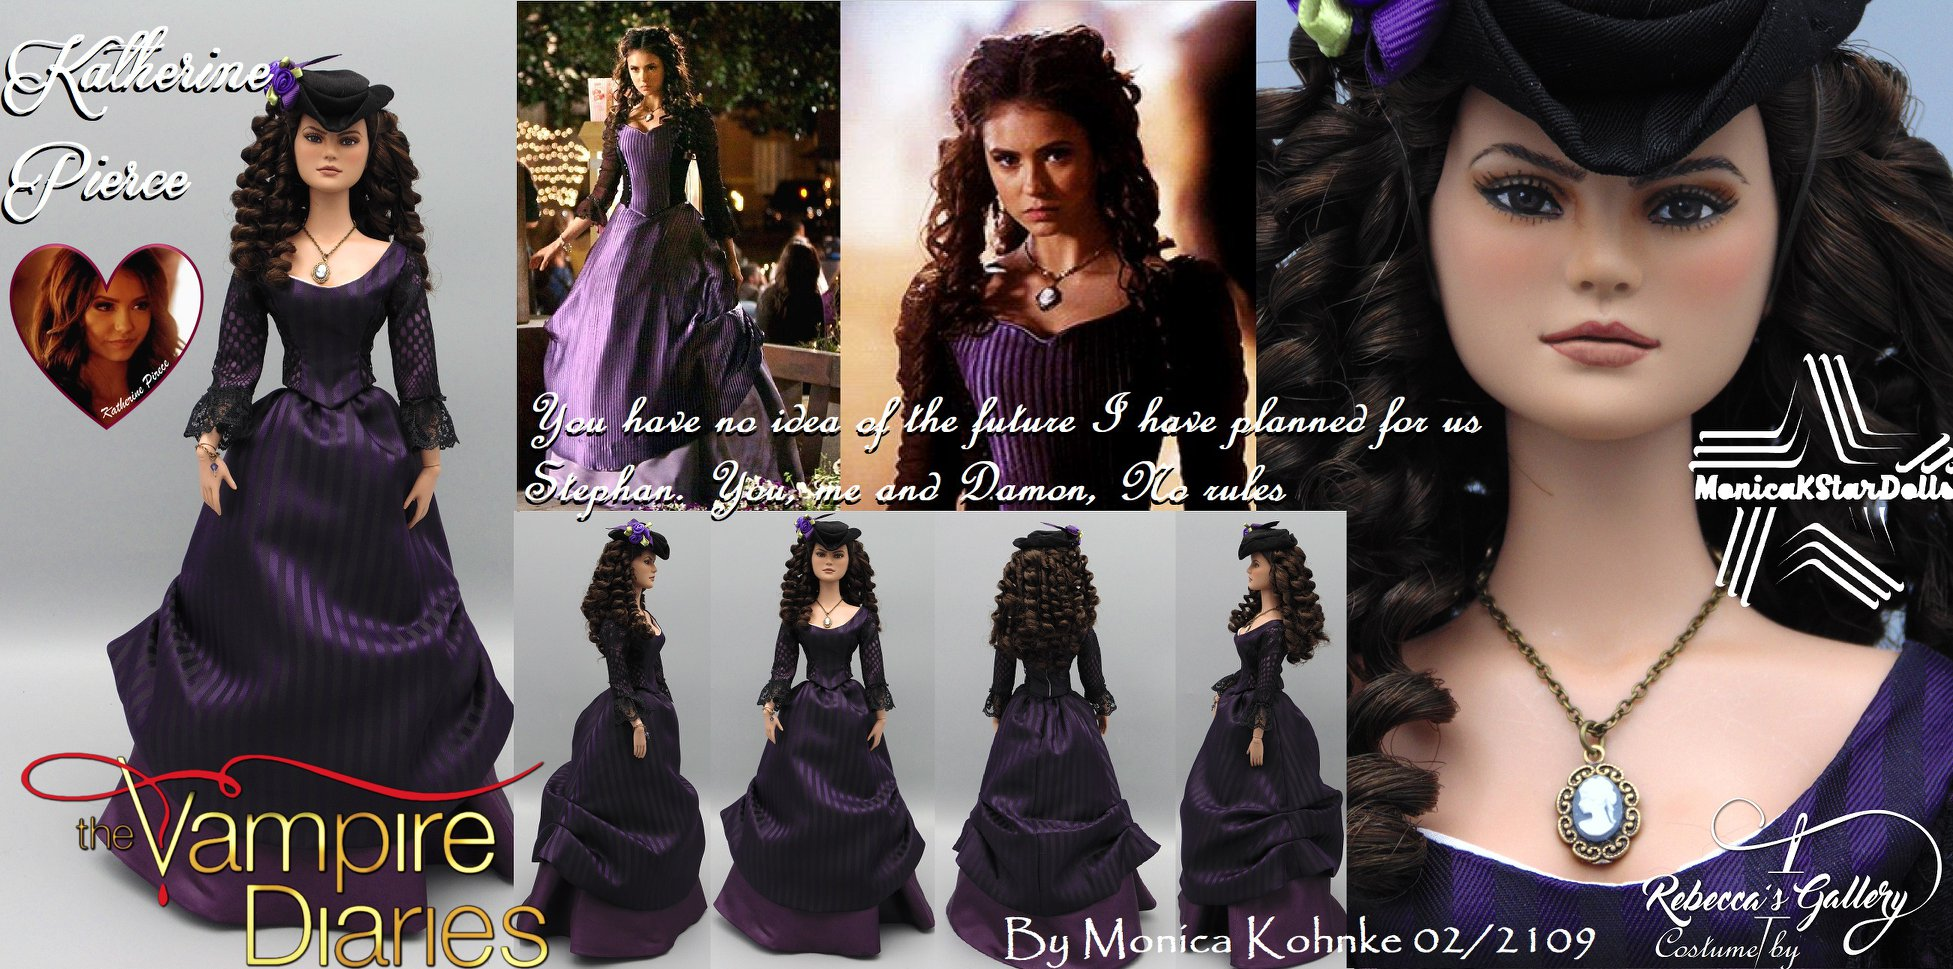 Katerine Pierce Vampire Diaries